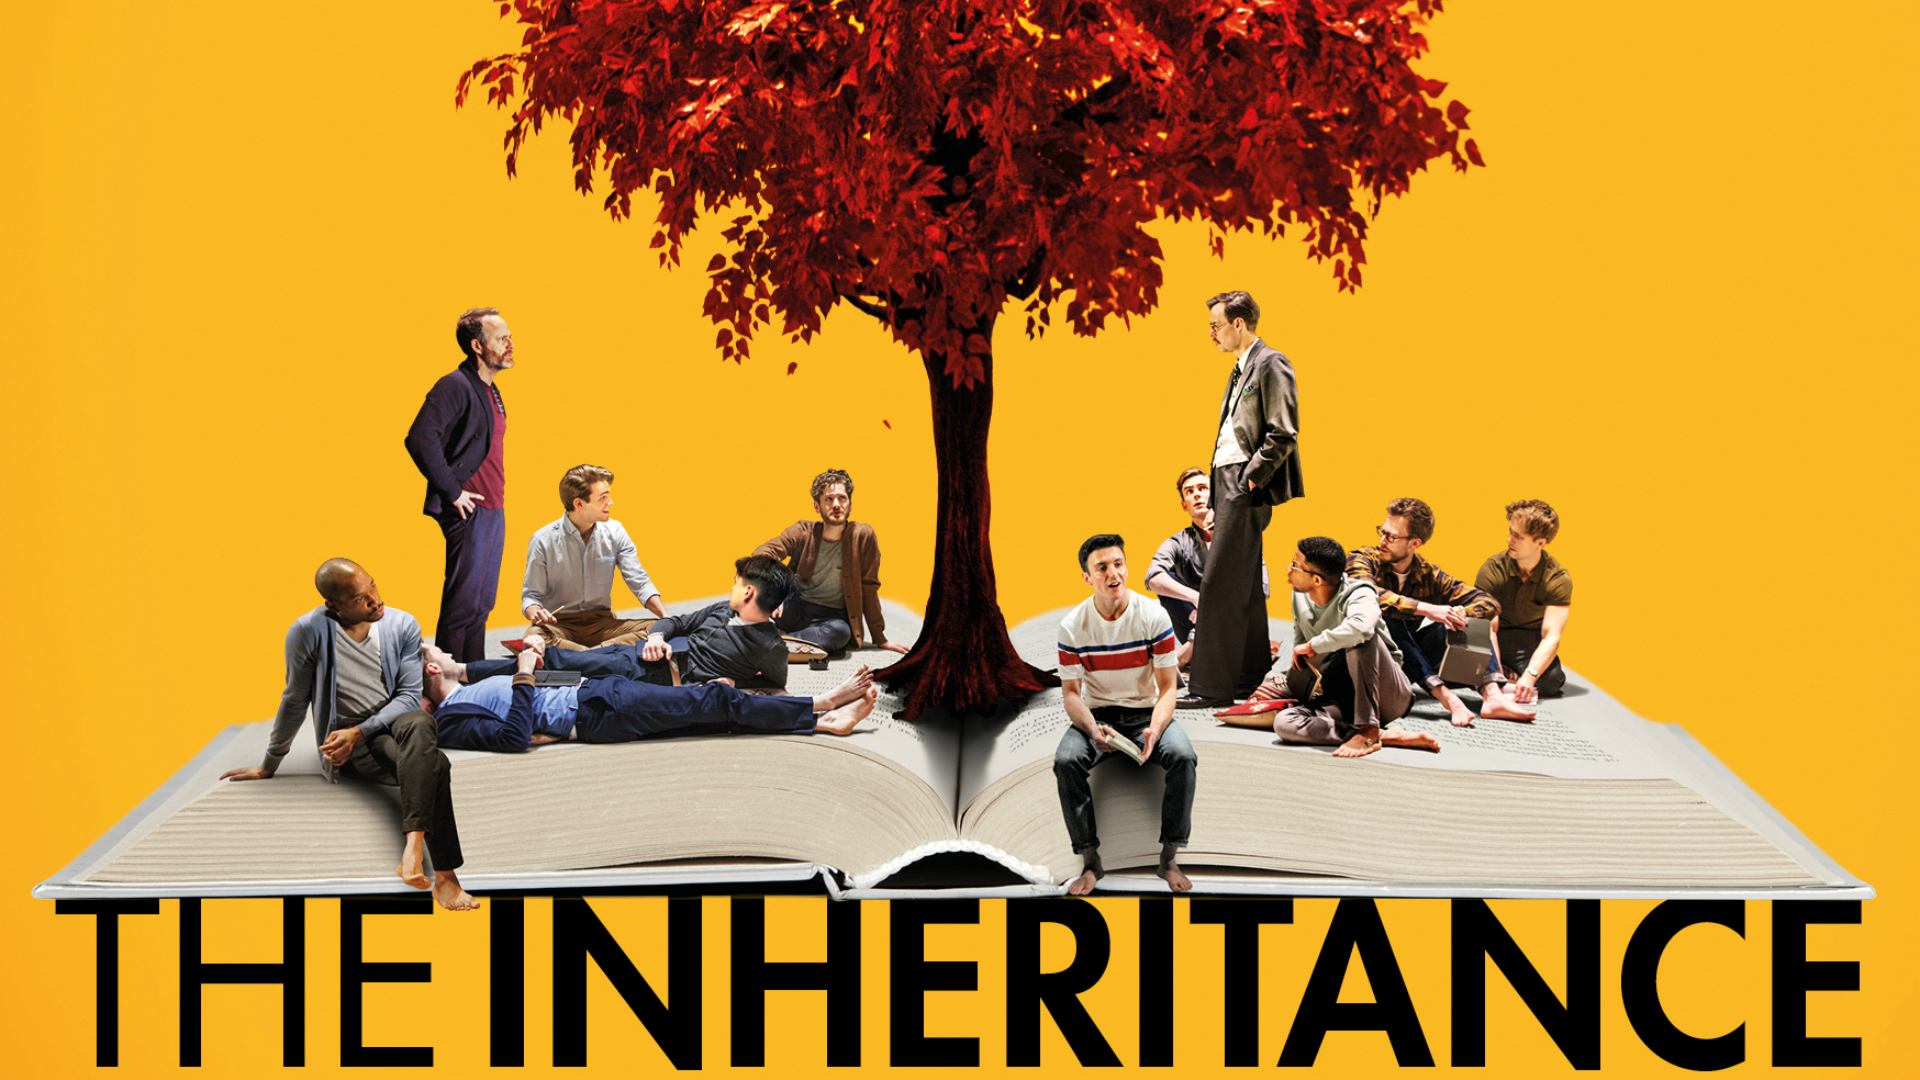 The Inheritance at the Noël Coward Theatre. Image courtesy of The Corner Shop PR.